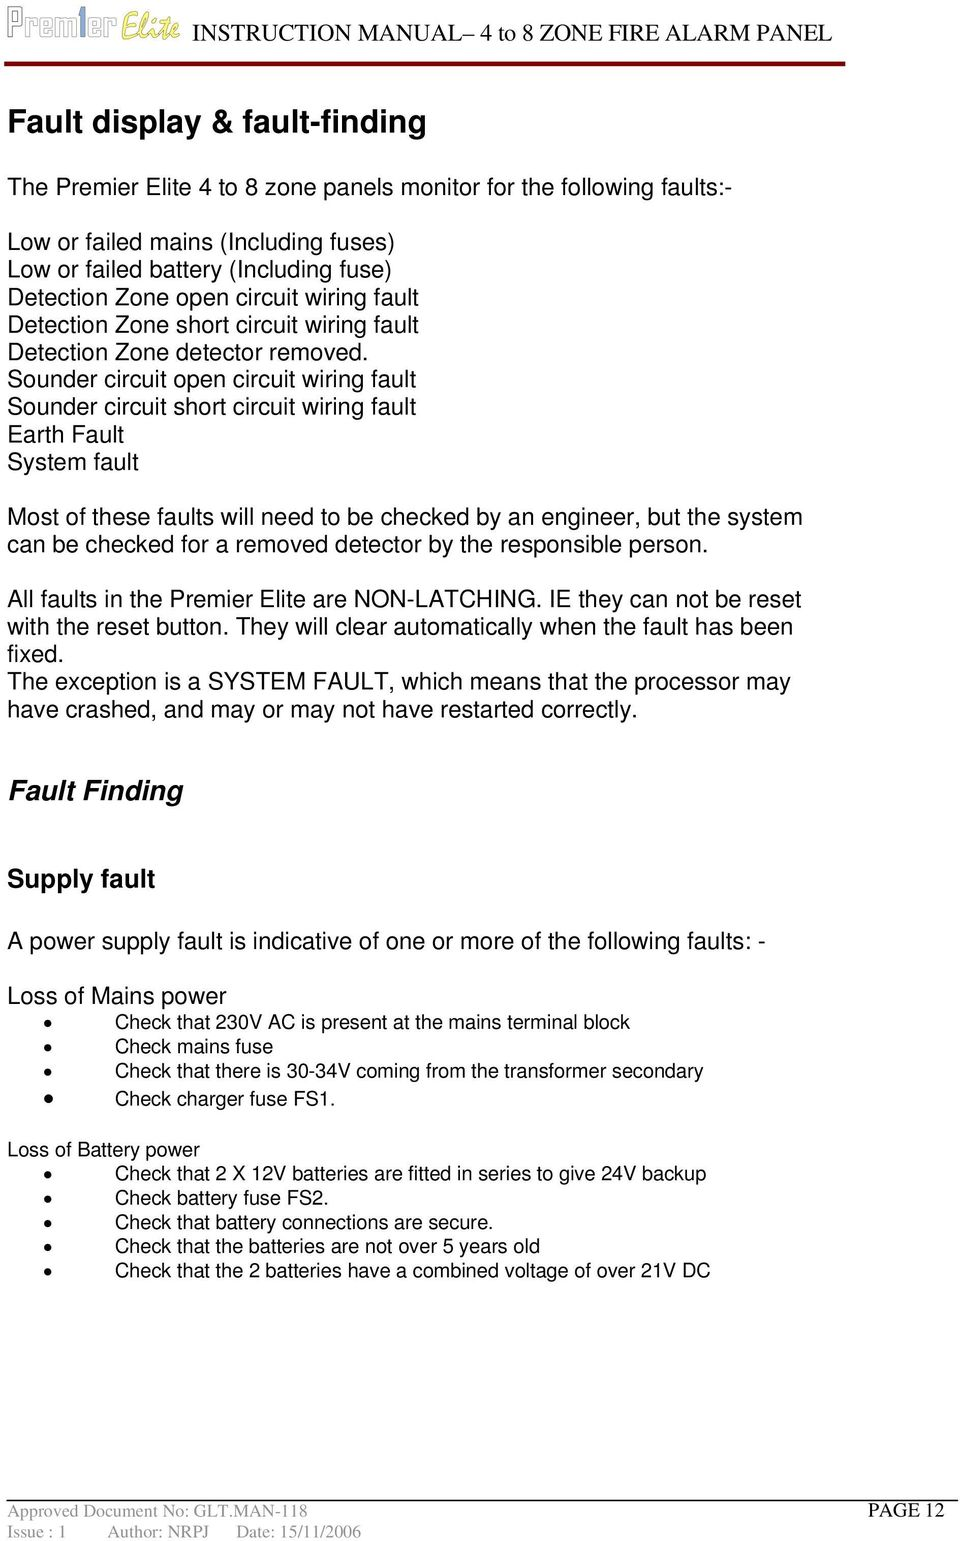 Instruction Manual 4 8 Zone Facp Pdf Short Circuit Detector Sounder Open Wiring Fault Earth System